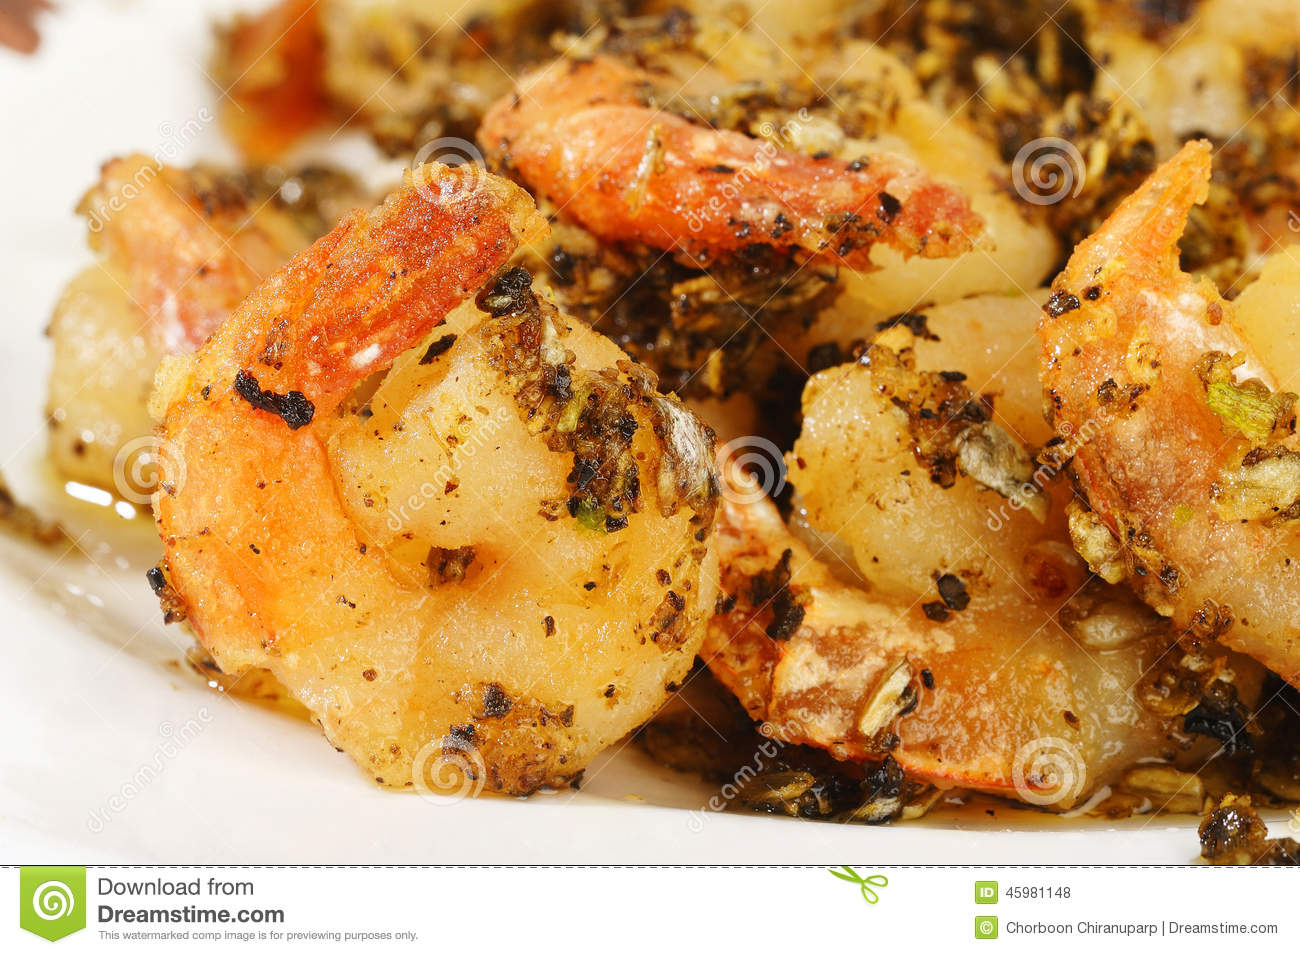 Fried Shrimp With Garlic Stock Photo - Image: 45981148